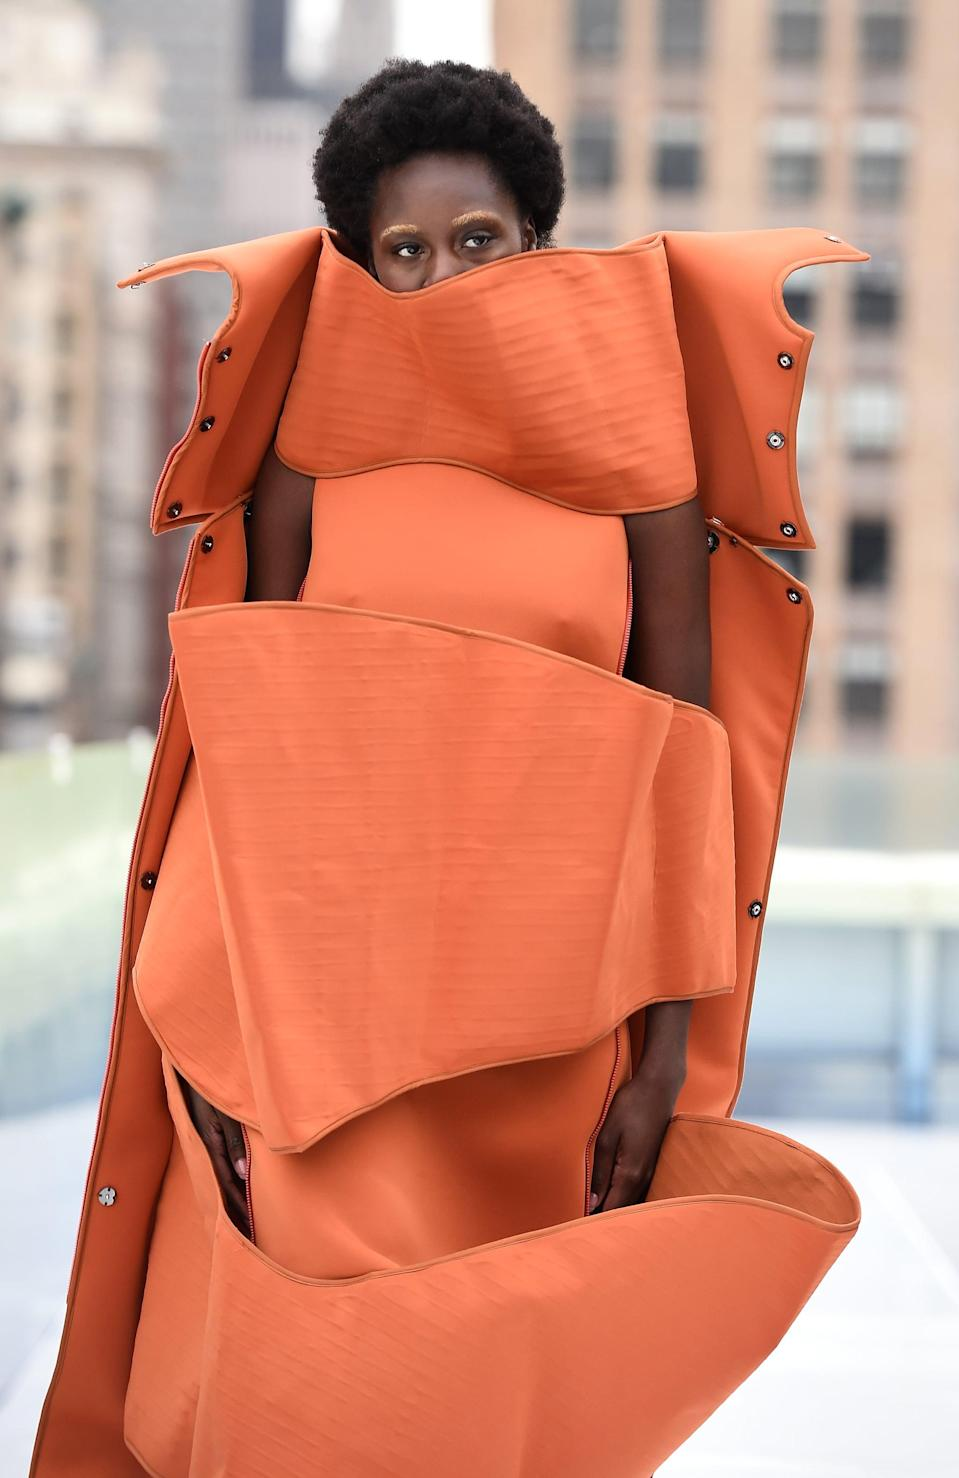 <p>This Flying Solo runway model made a statement with gold eyebrows that complemented her bright outfit.</p>